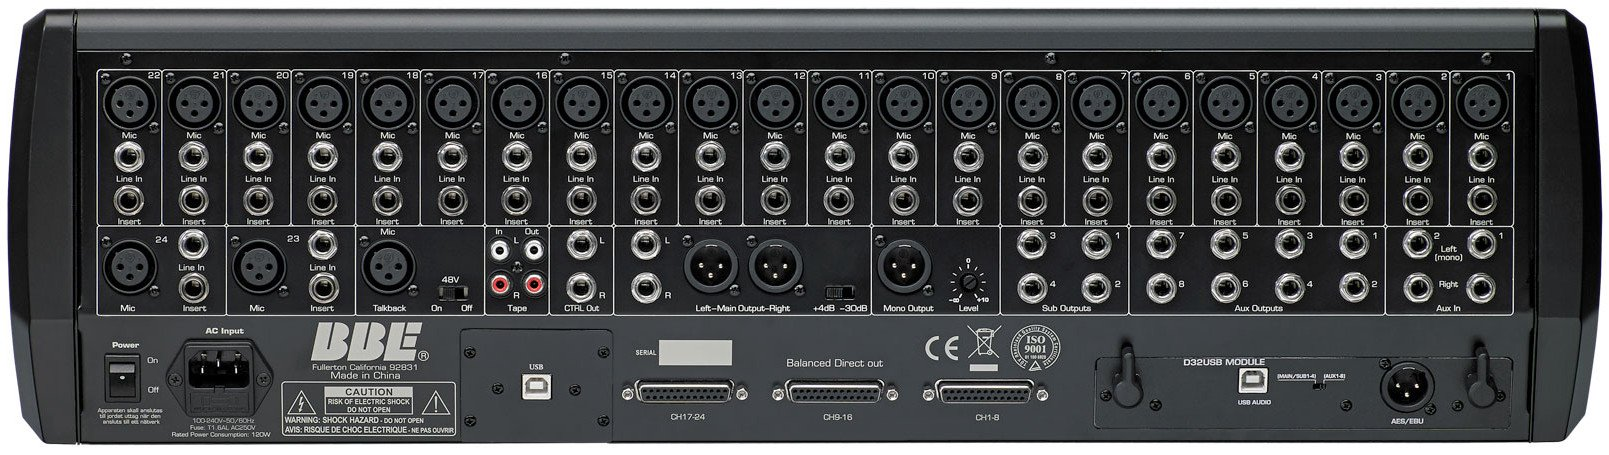 24-Channel Digital Mixer with BBE Sonic Maximizer Processing and Flight Case